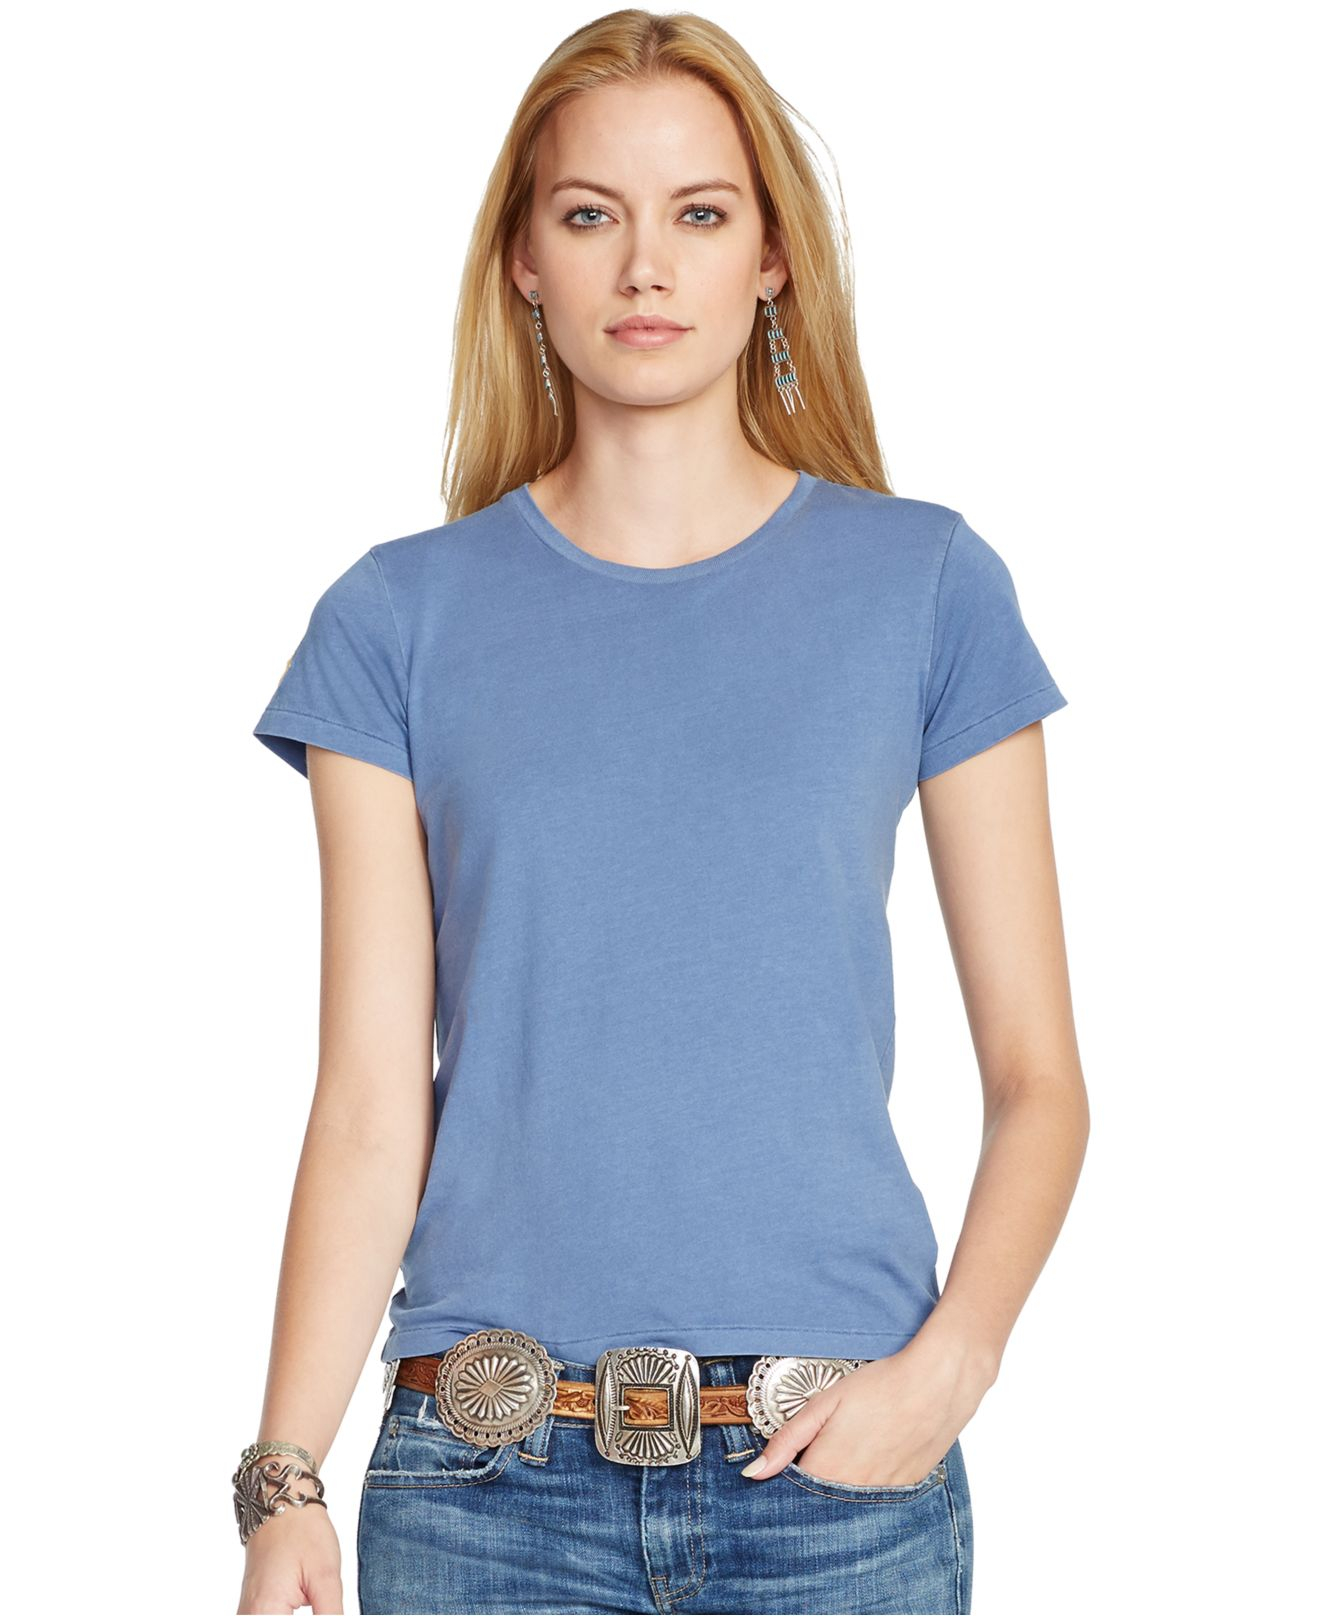 Lyst Polo Ralph Lauren Short Sleeve Fitted T Shirt In Blue